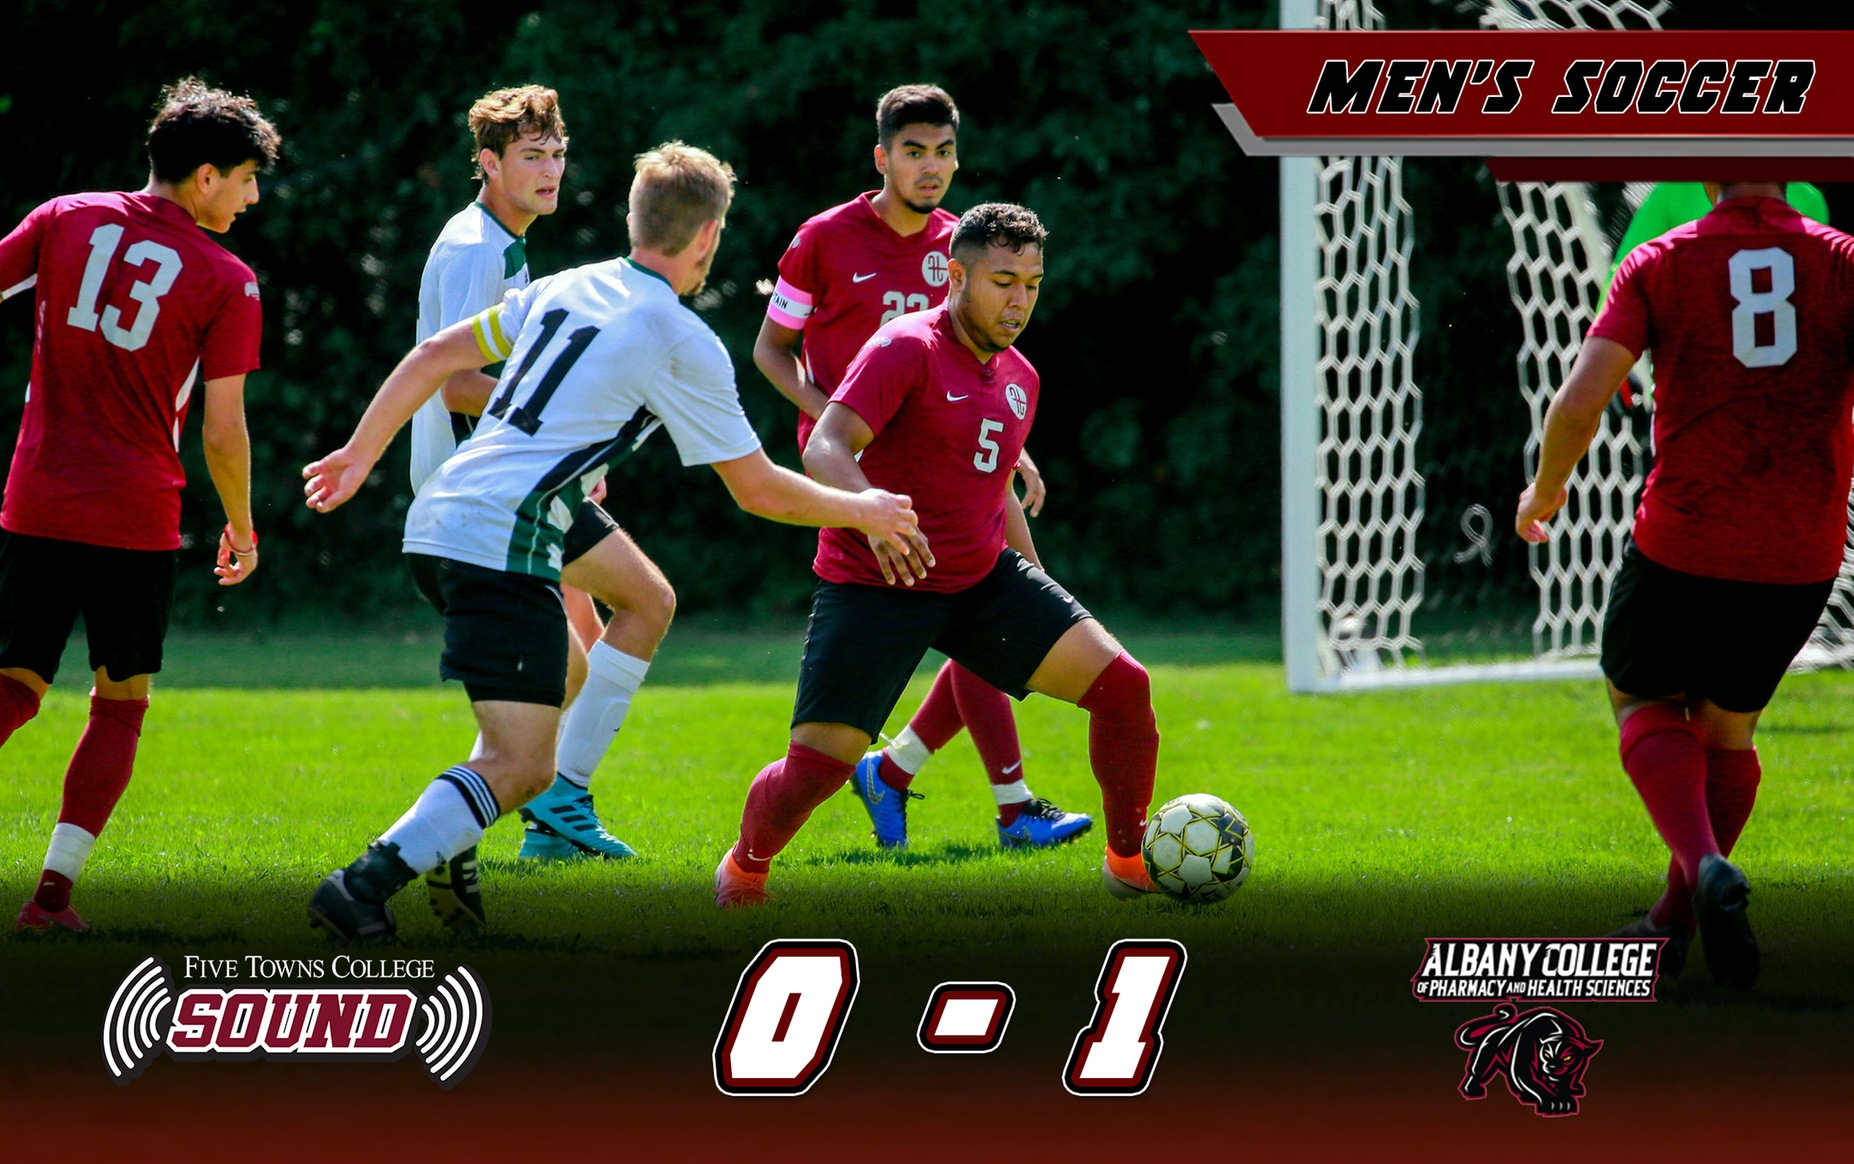 Men's Soccer Comes up Short at Albany